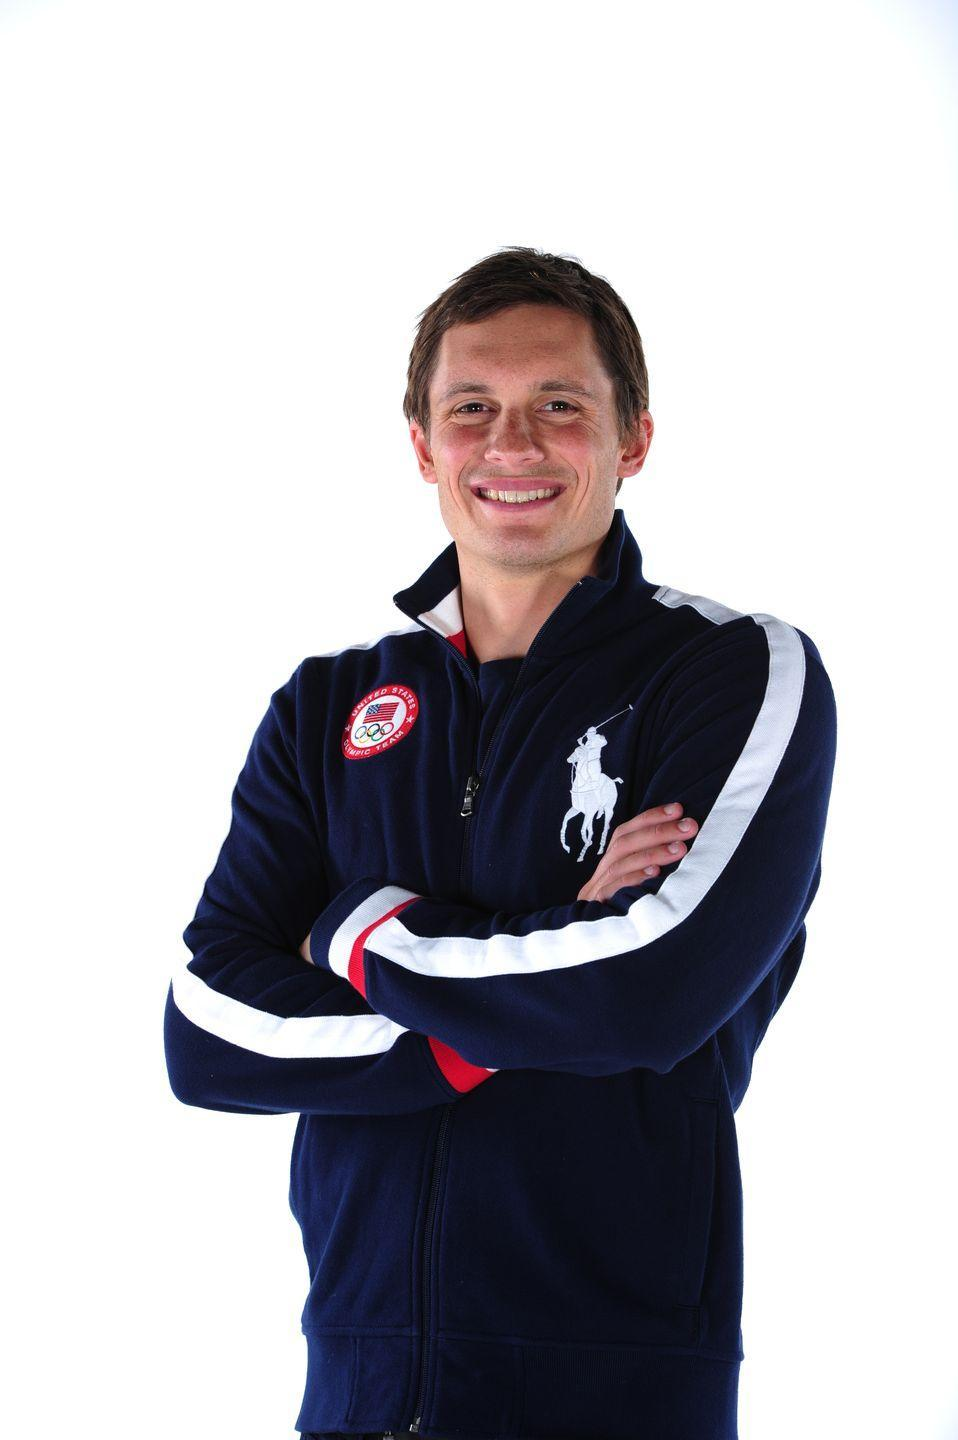 """<p>The Olympic swimmer was diagnosed with testicular cancer in July of 2008—one week before he qualified for the 2008 Summer Olympics. He still competed and told <a href=""""https://www.swimmingworldmagazine.com/news/eric-shanteau-reflects-on-testicular-cancer-battle/"""" rel=""""nofollow noopener"""" target=""""_blank"""" data-ylk=""""slk:Swimming World"""" class=""""link rapid-noclick-resp""""><em>Swimming World</em></a> the struggle actually helped give him a different perspective on his sport: """"I think a lot of the times when you get to a high level of competition, it becomes the most important thing in the world and it's really not. There is a big life outside of sports,"""" he said. </p>"""